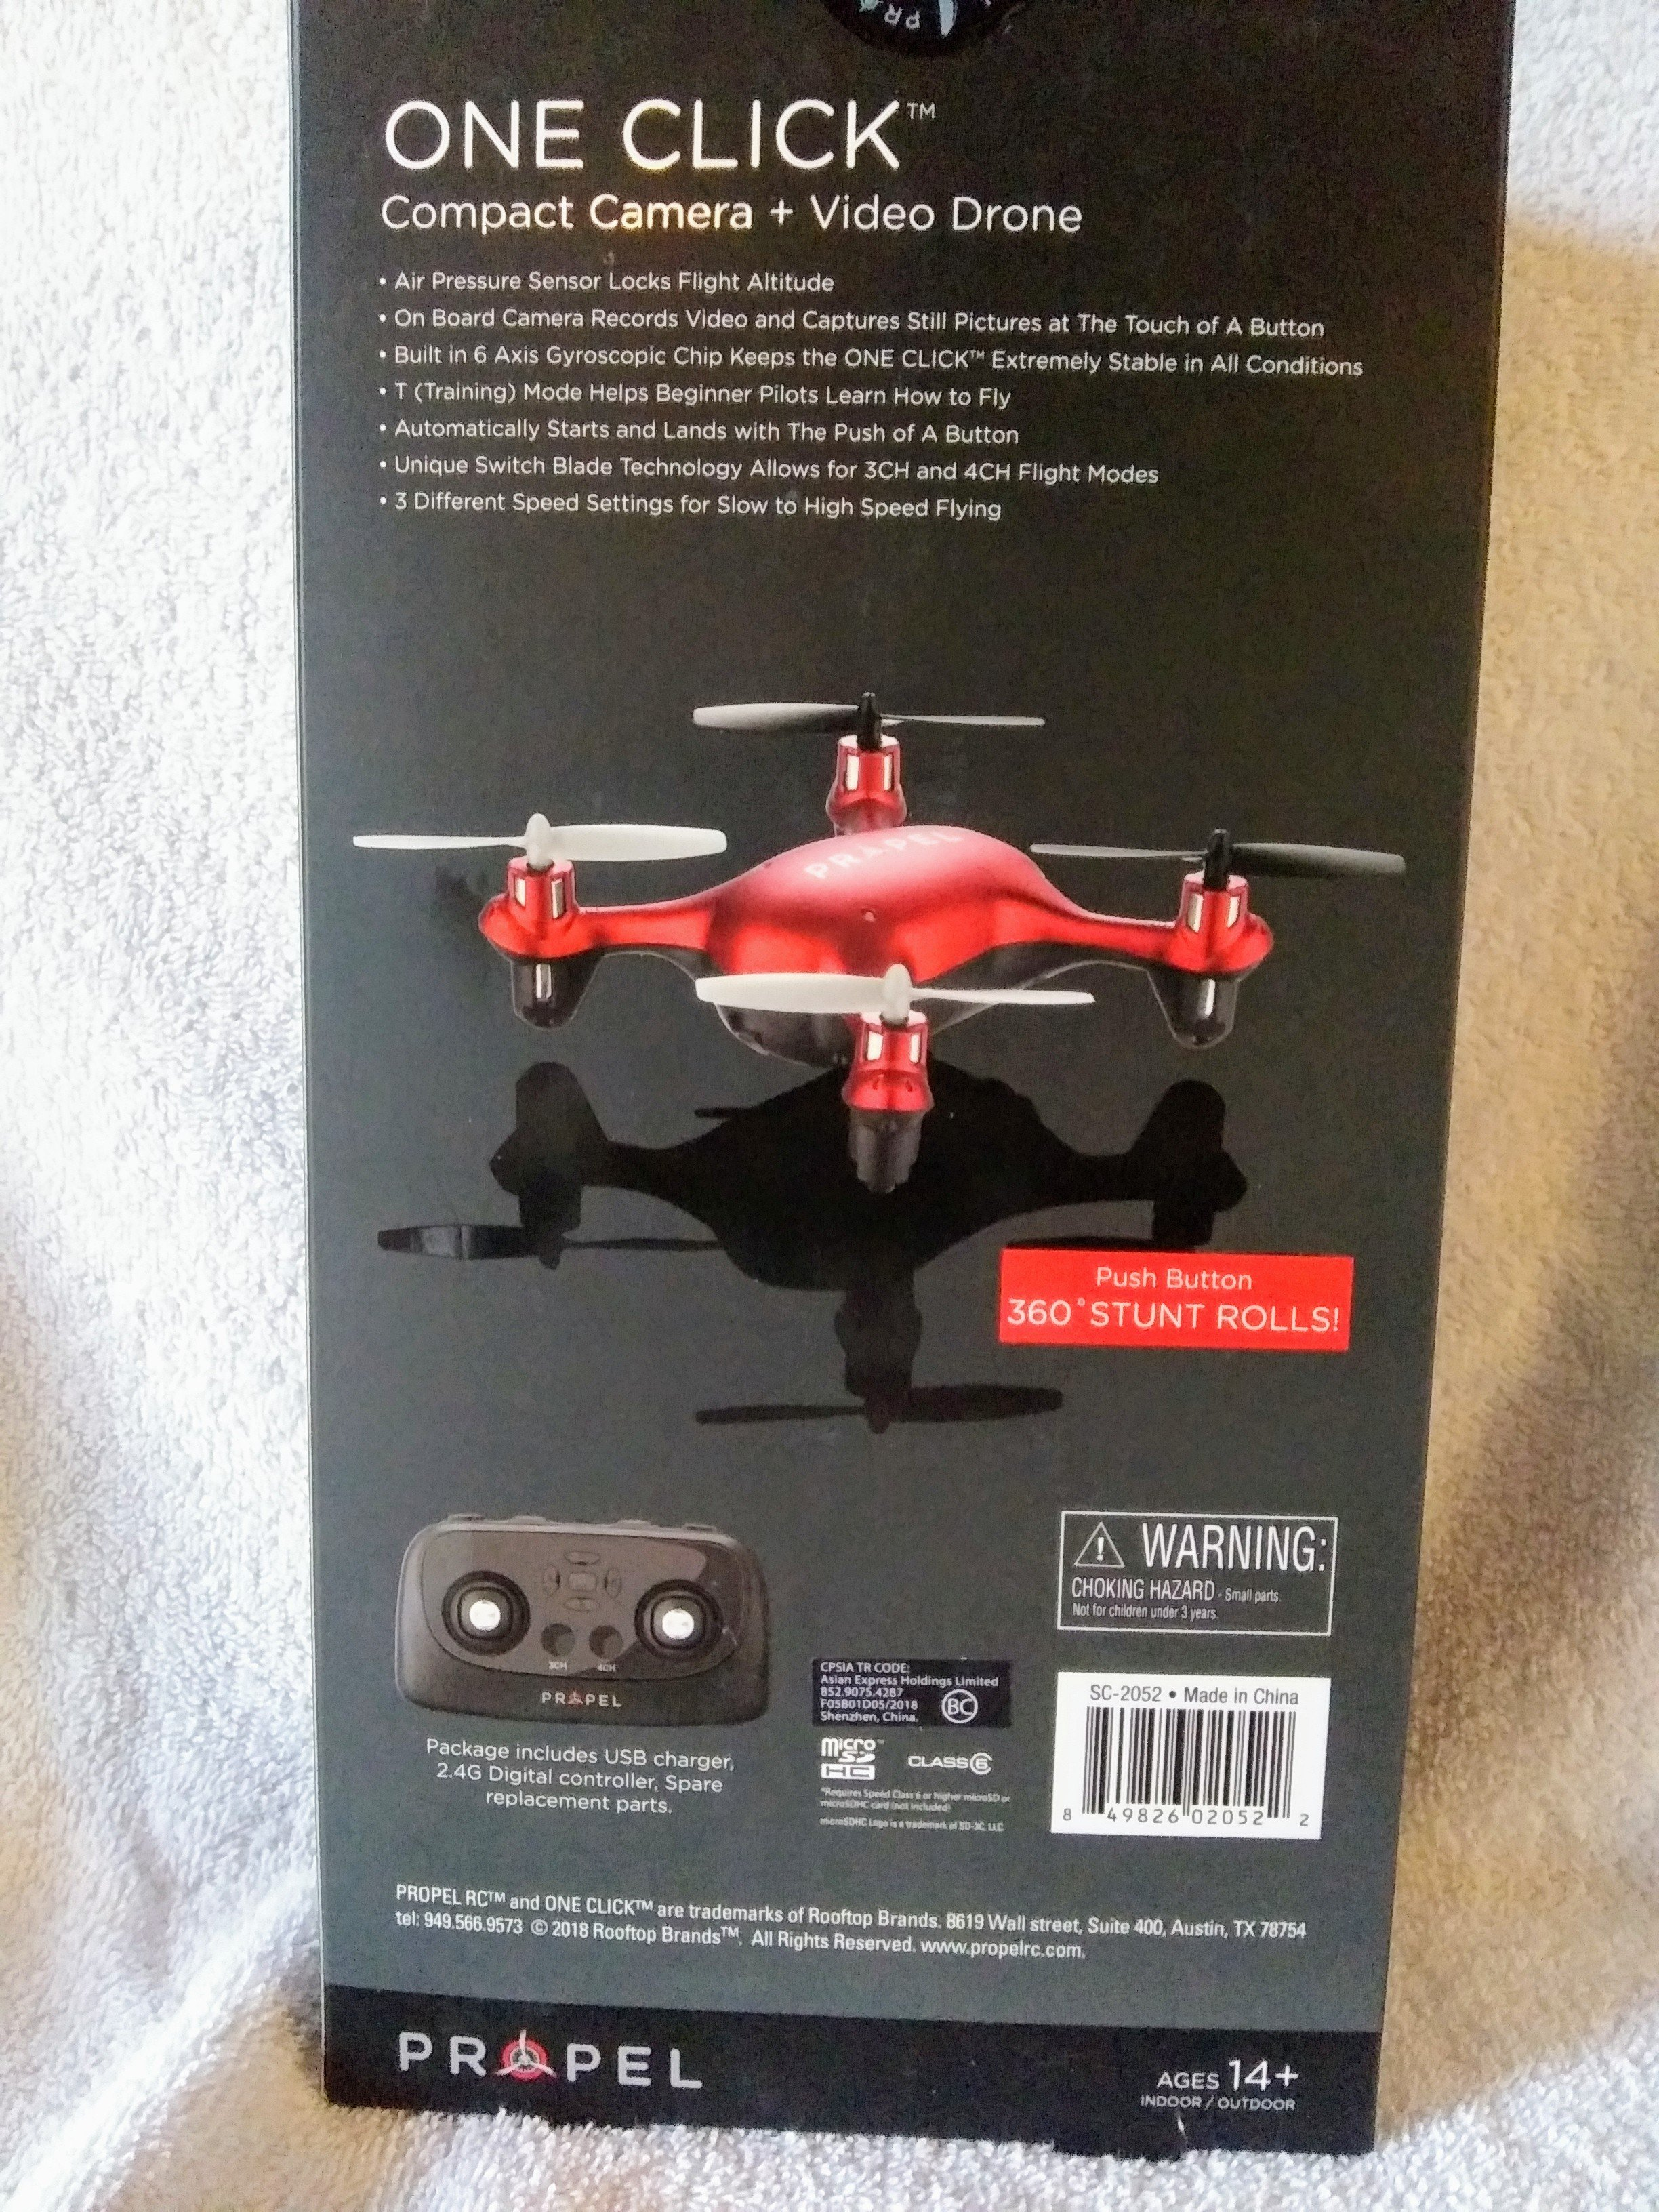 One Click Camera and Video Drone Image #3